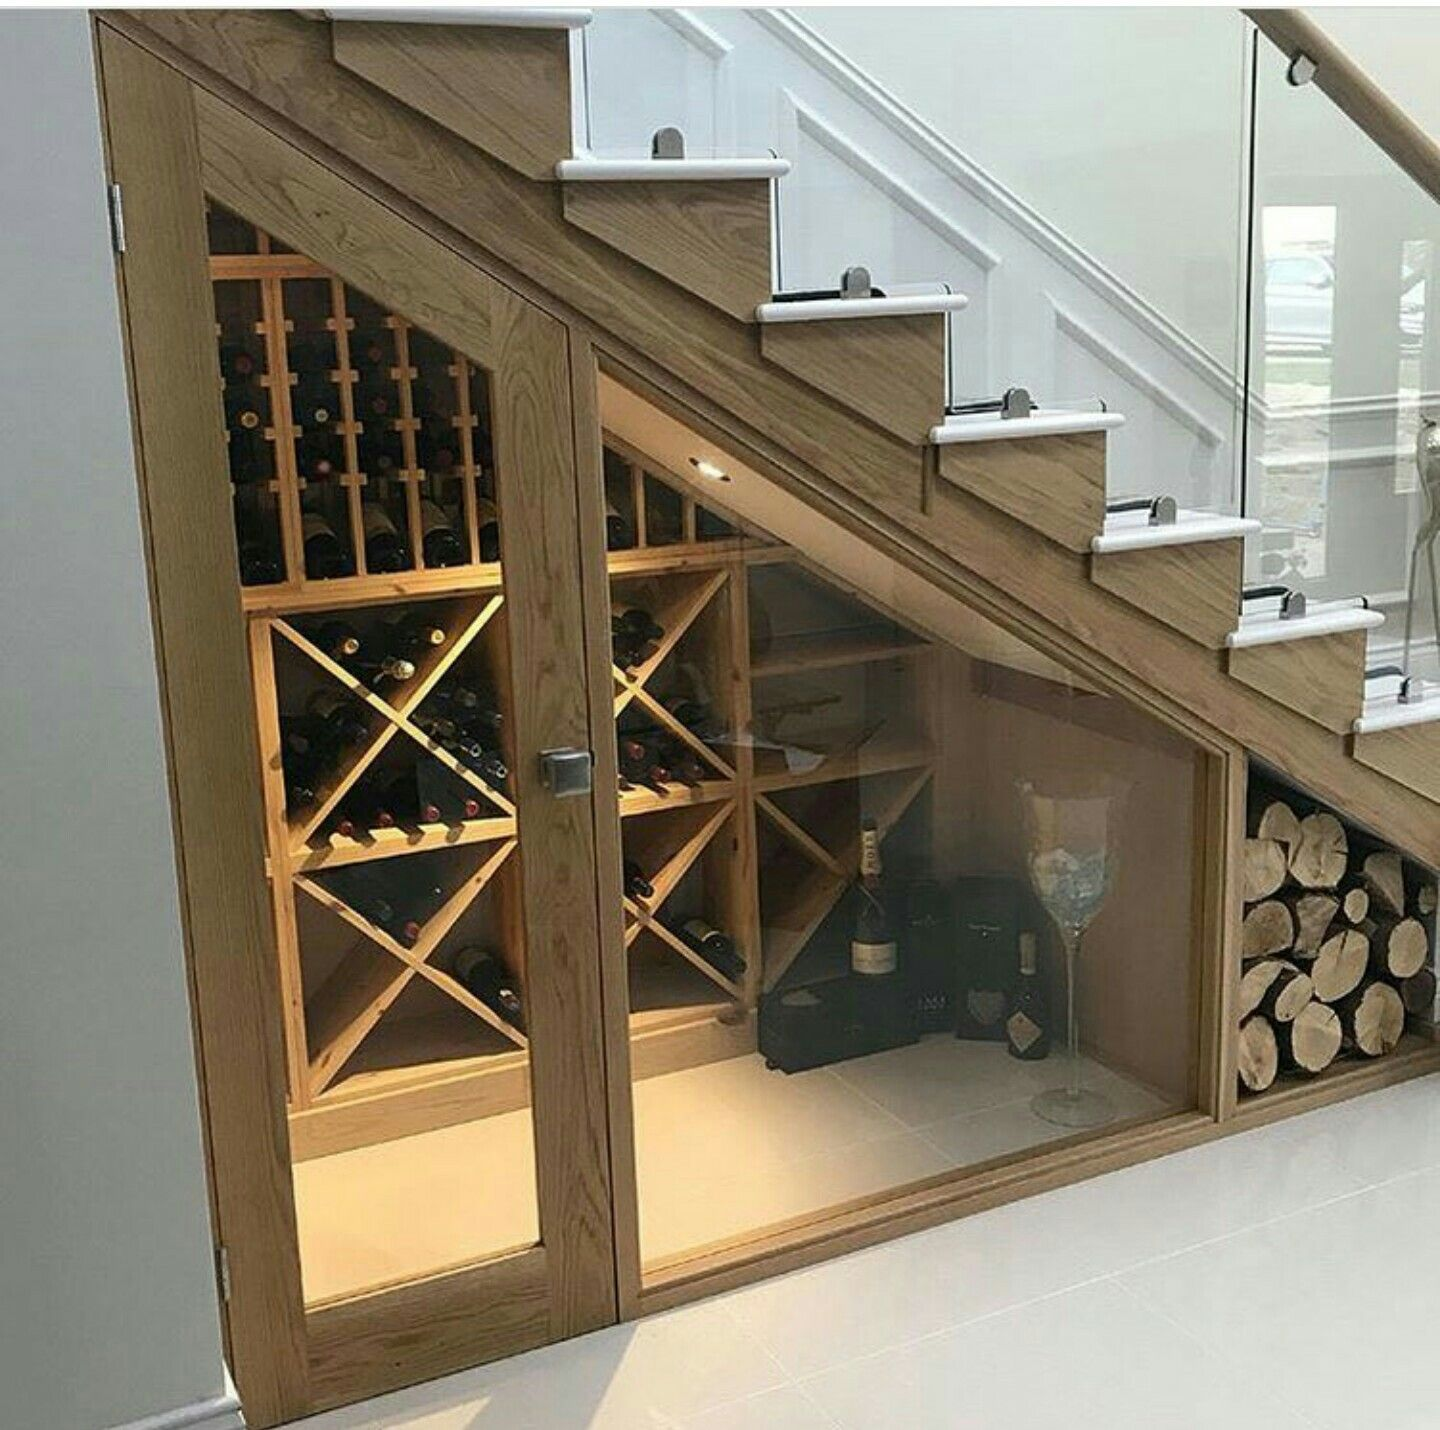 Bespoke Under Stairs Shelving: Pin By Sabel Fantini On Dream Tiny